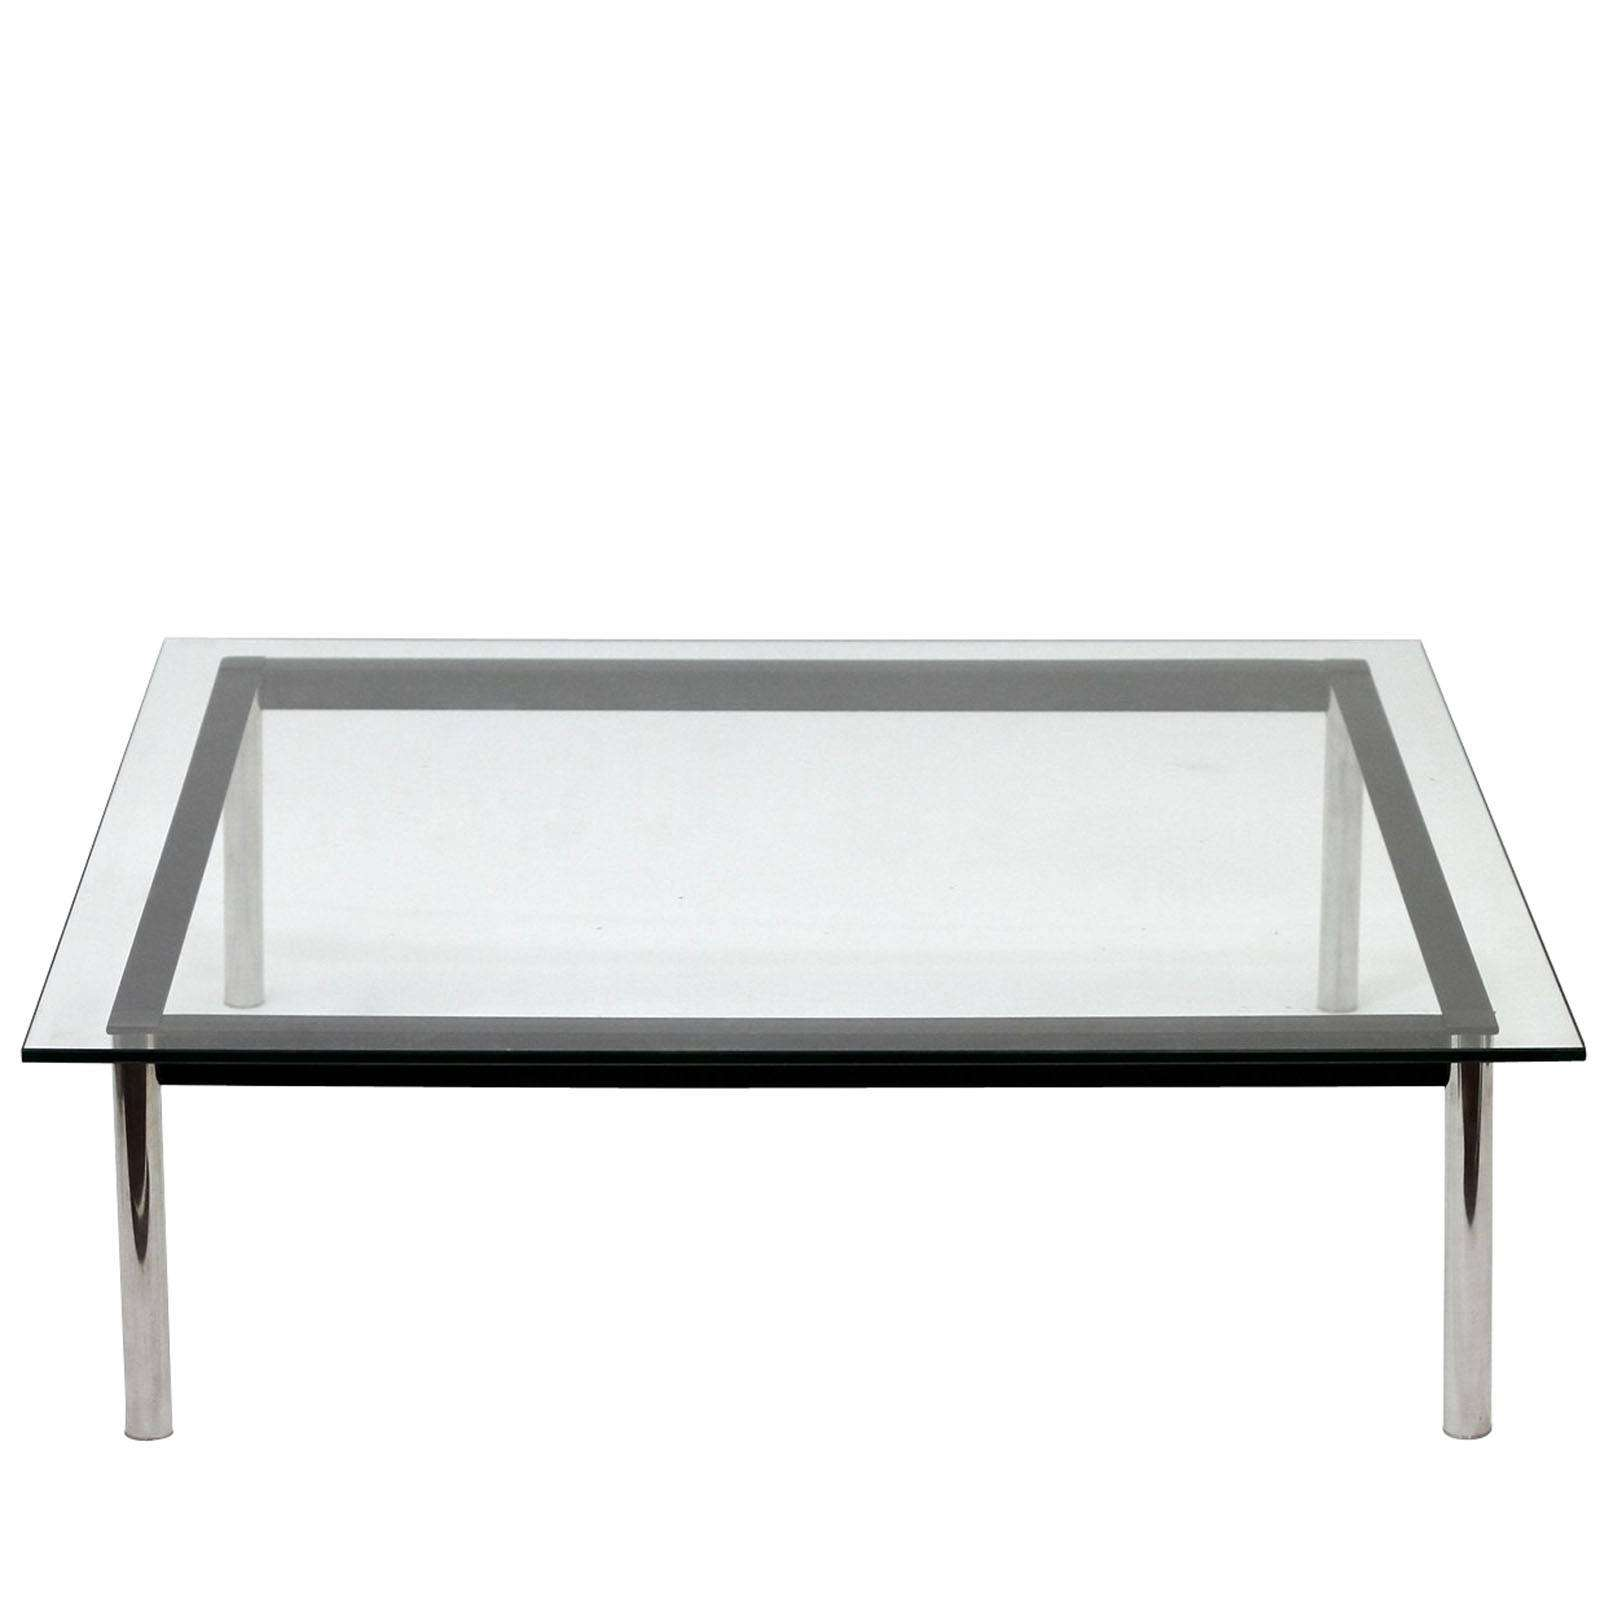 Le Corbusier Style Lc10 Square Coffee Table